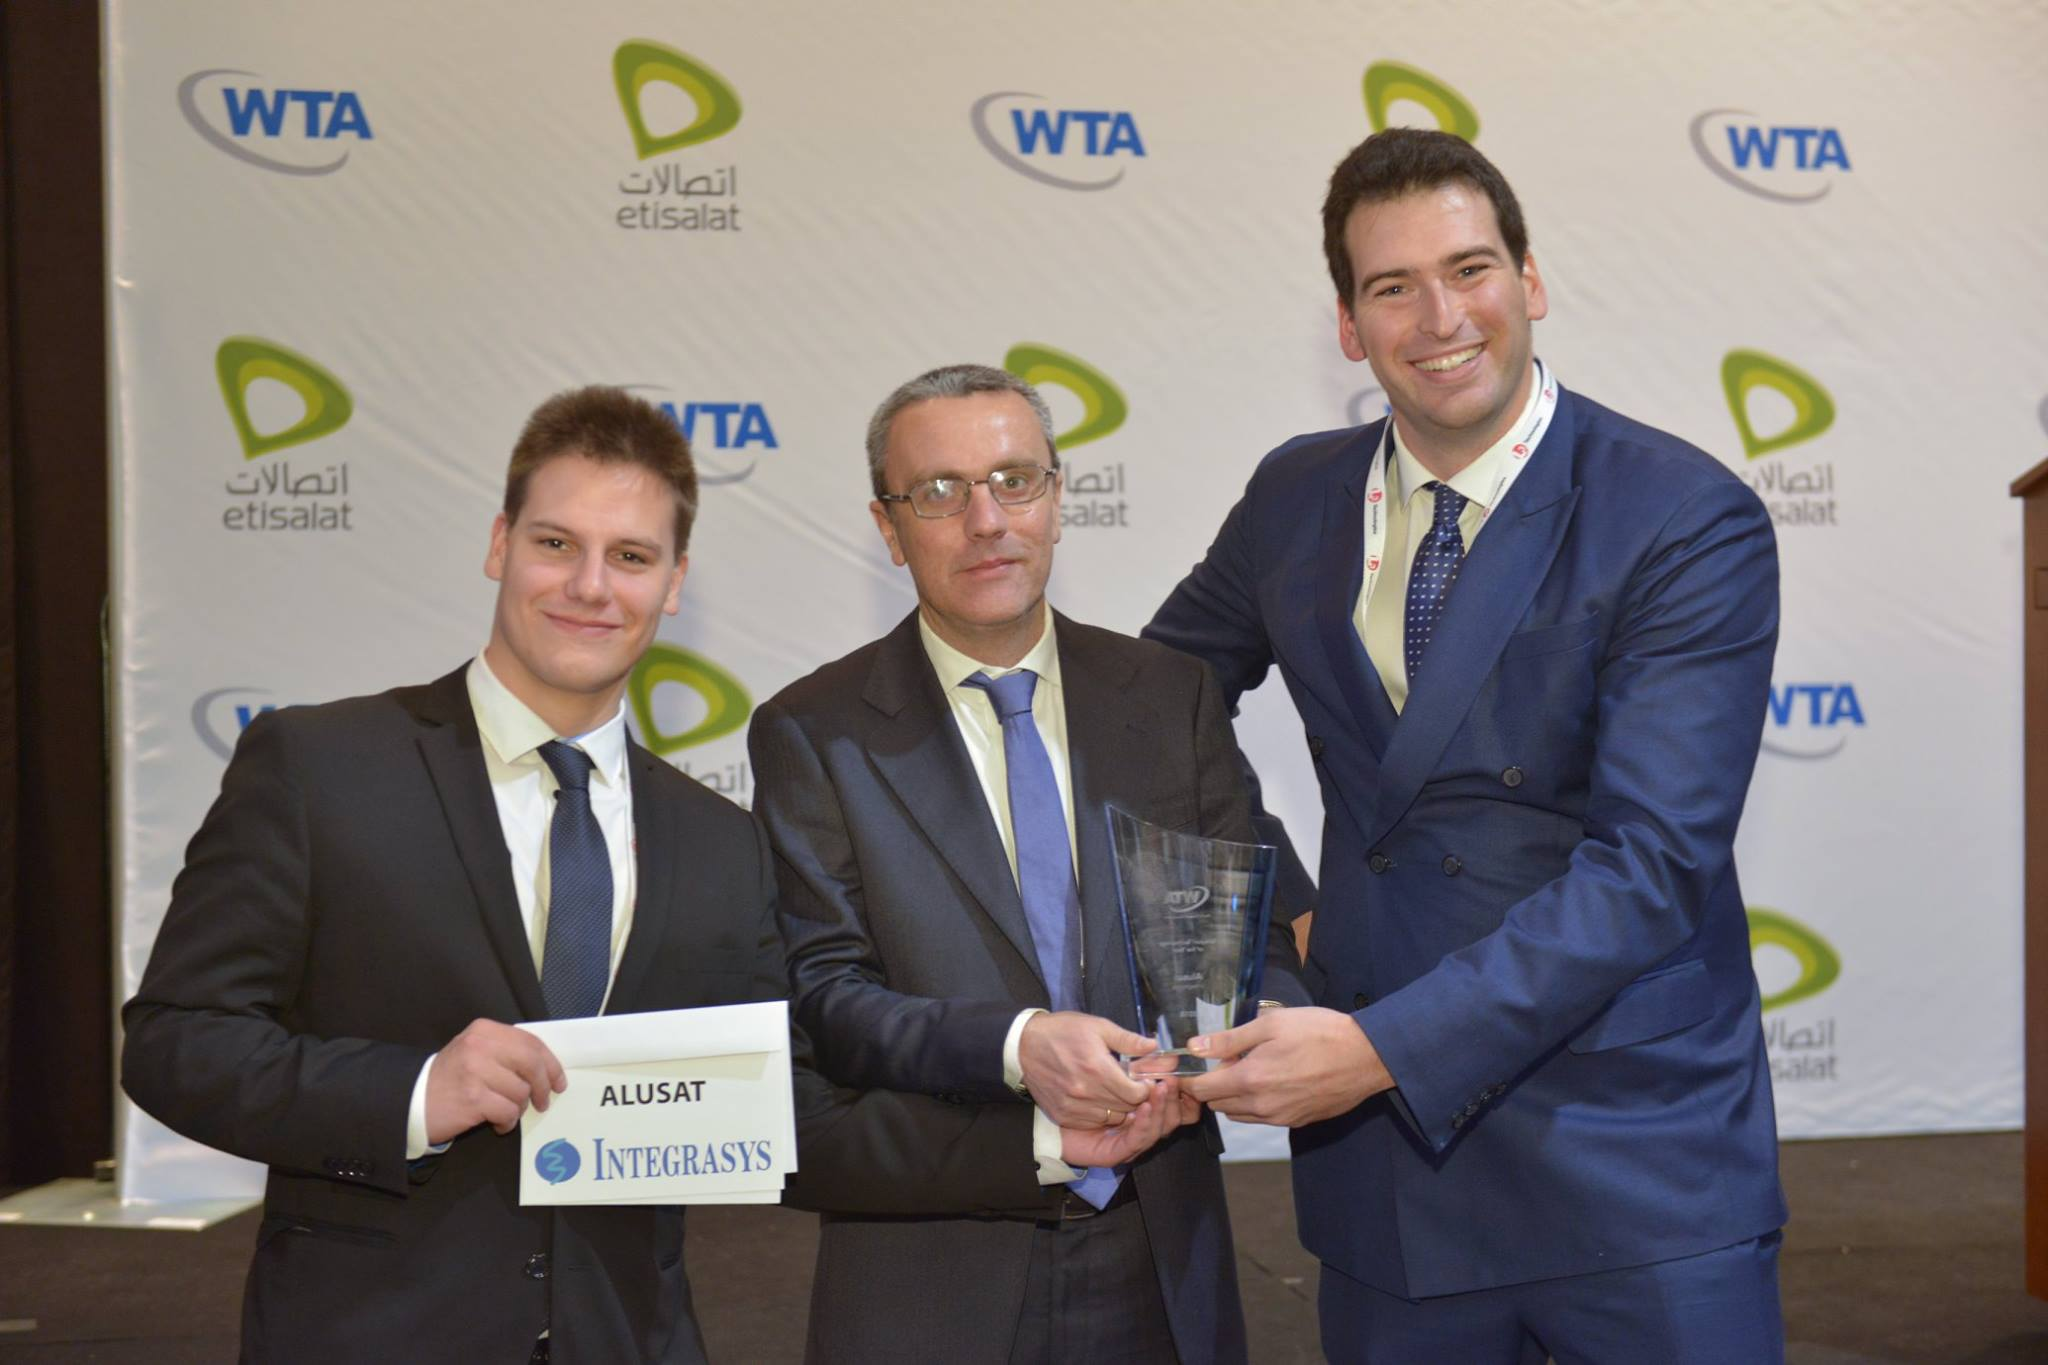 ALUSAT was awarded 'Teleport Technology of the Year' by the World Teleport Association.